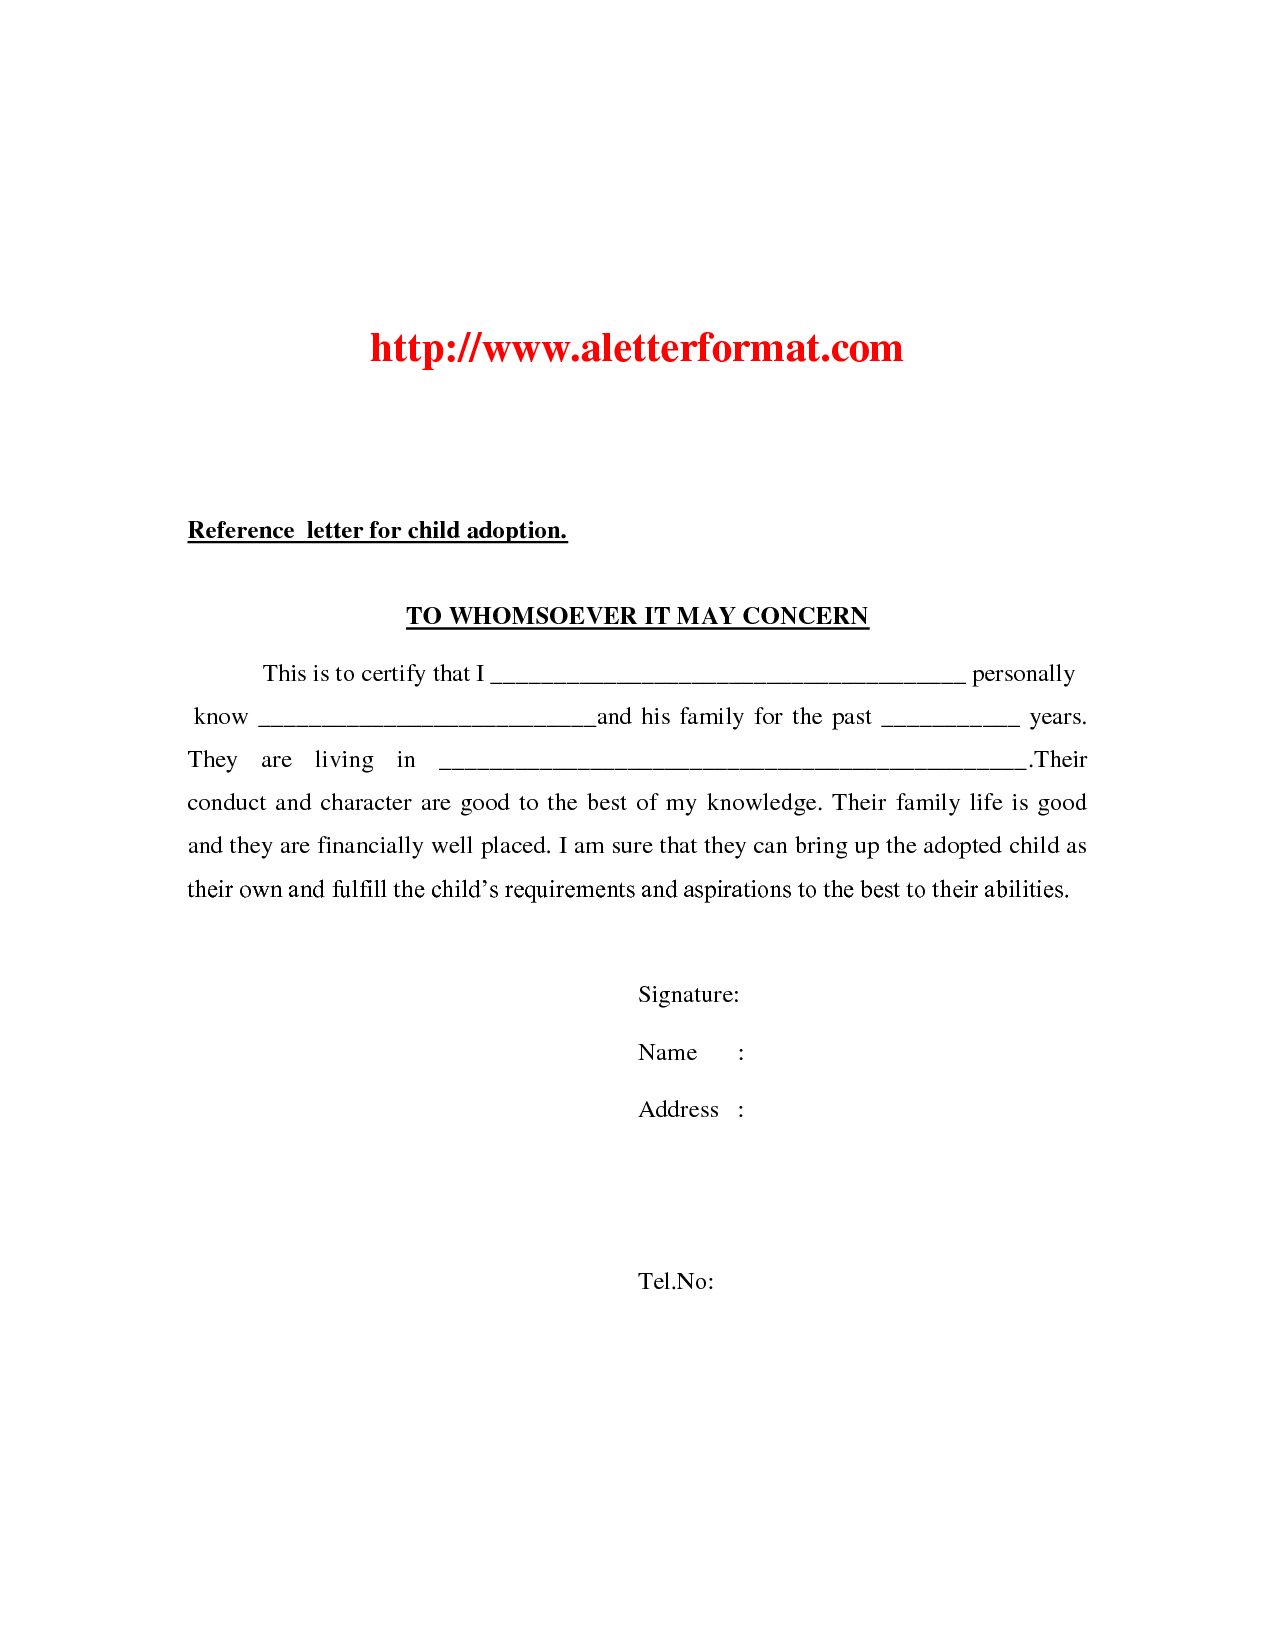 Adoption Reference Letter Template - Adoption Reference Letter Gallery Letter format formal Sample